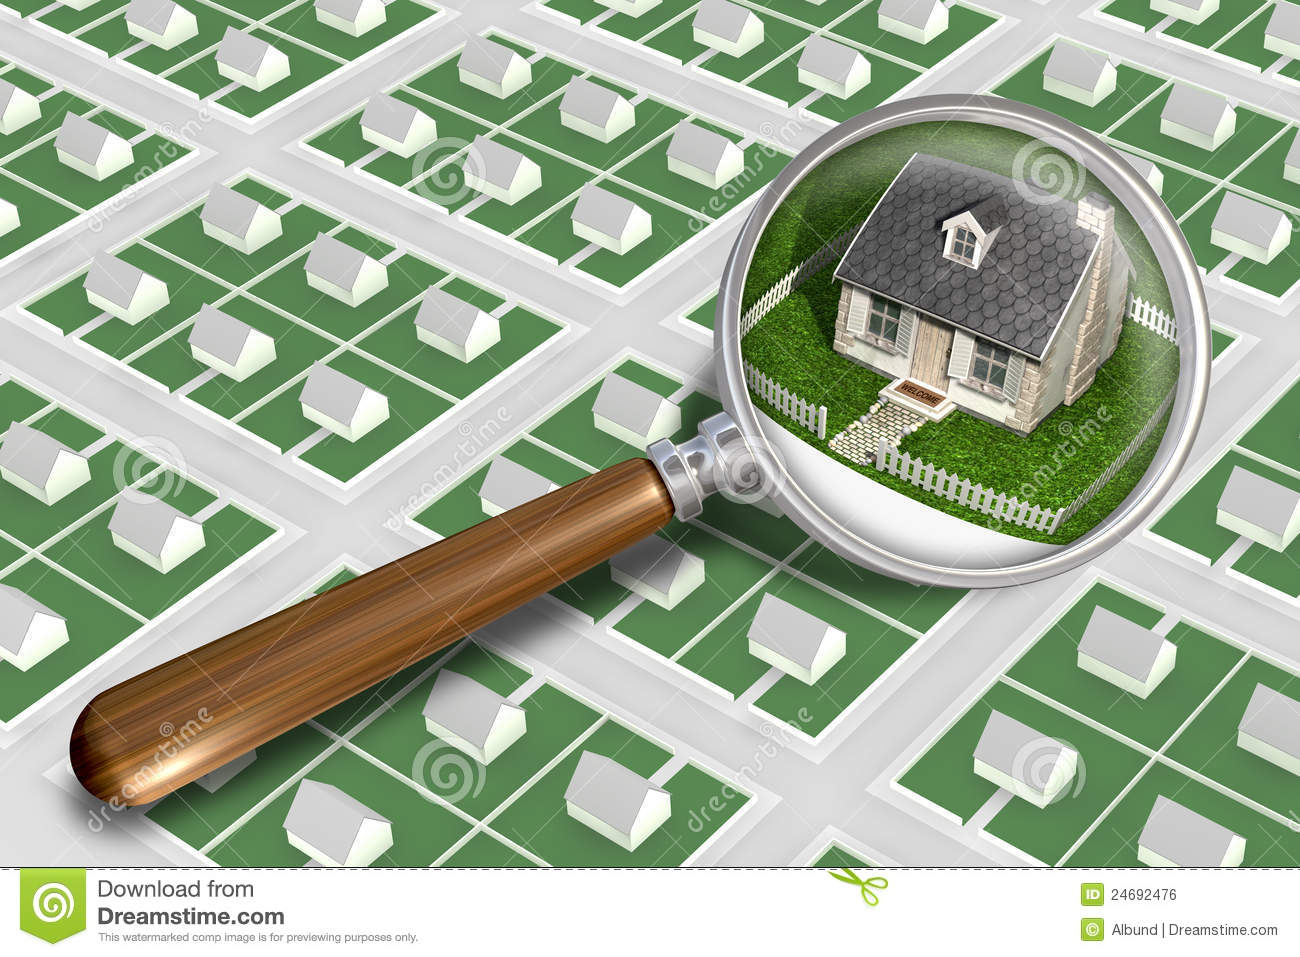 Find the perfect house royalty free stock image image for Find the perfect house